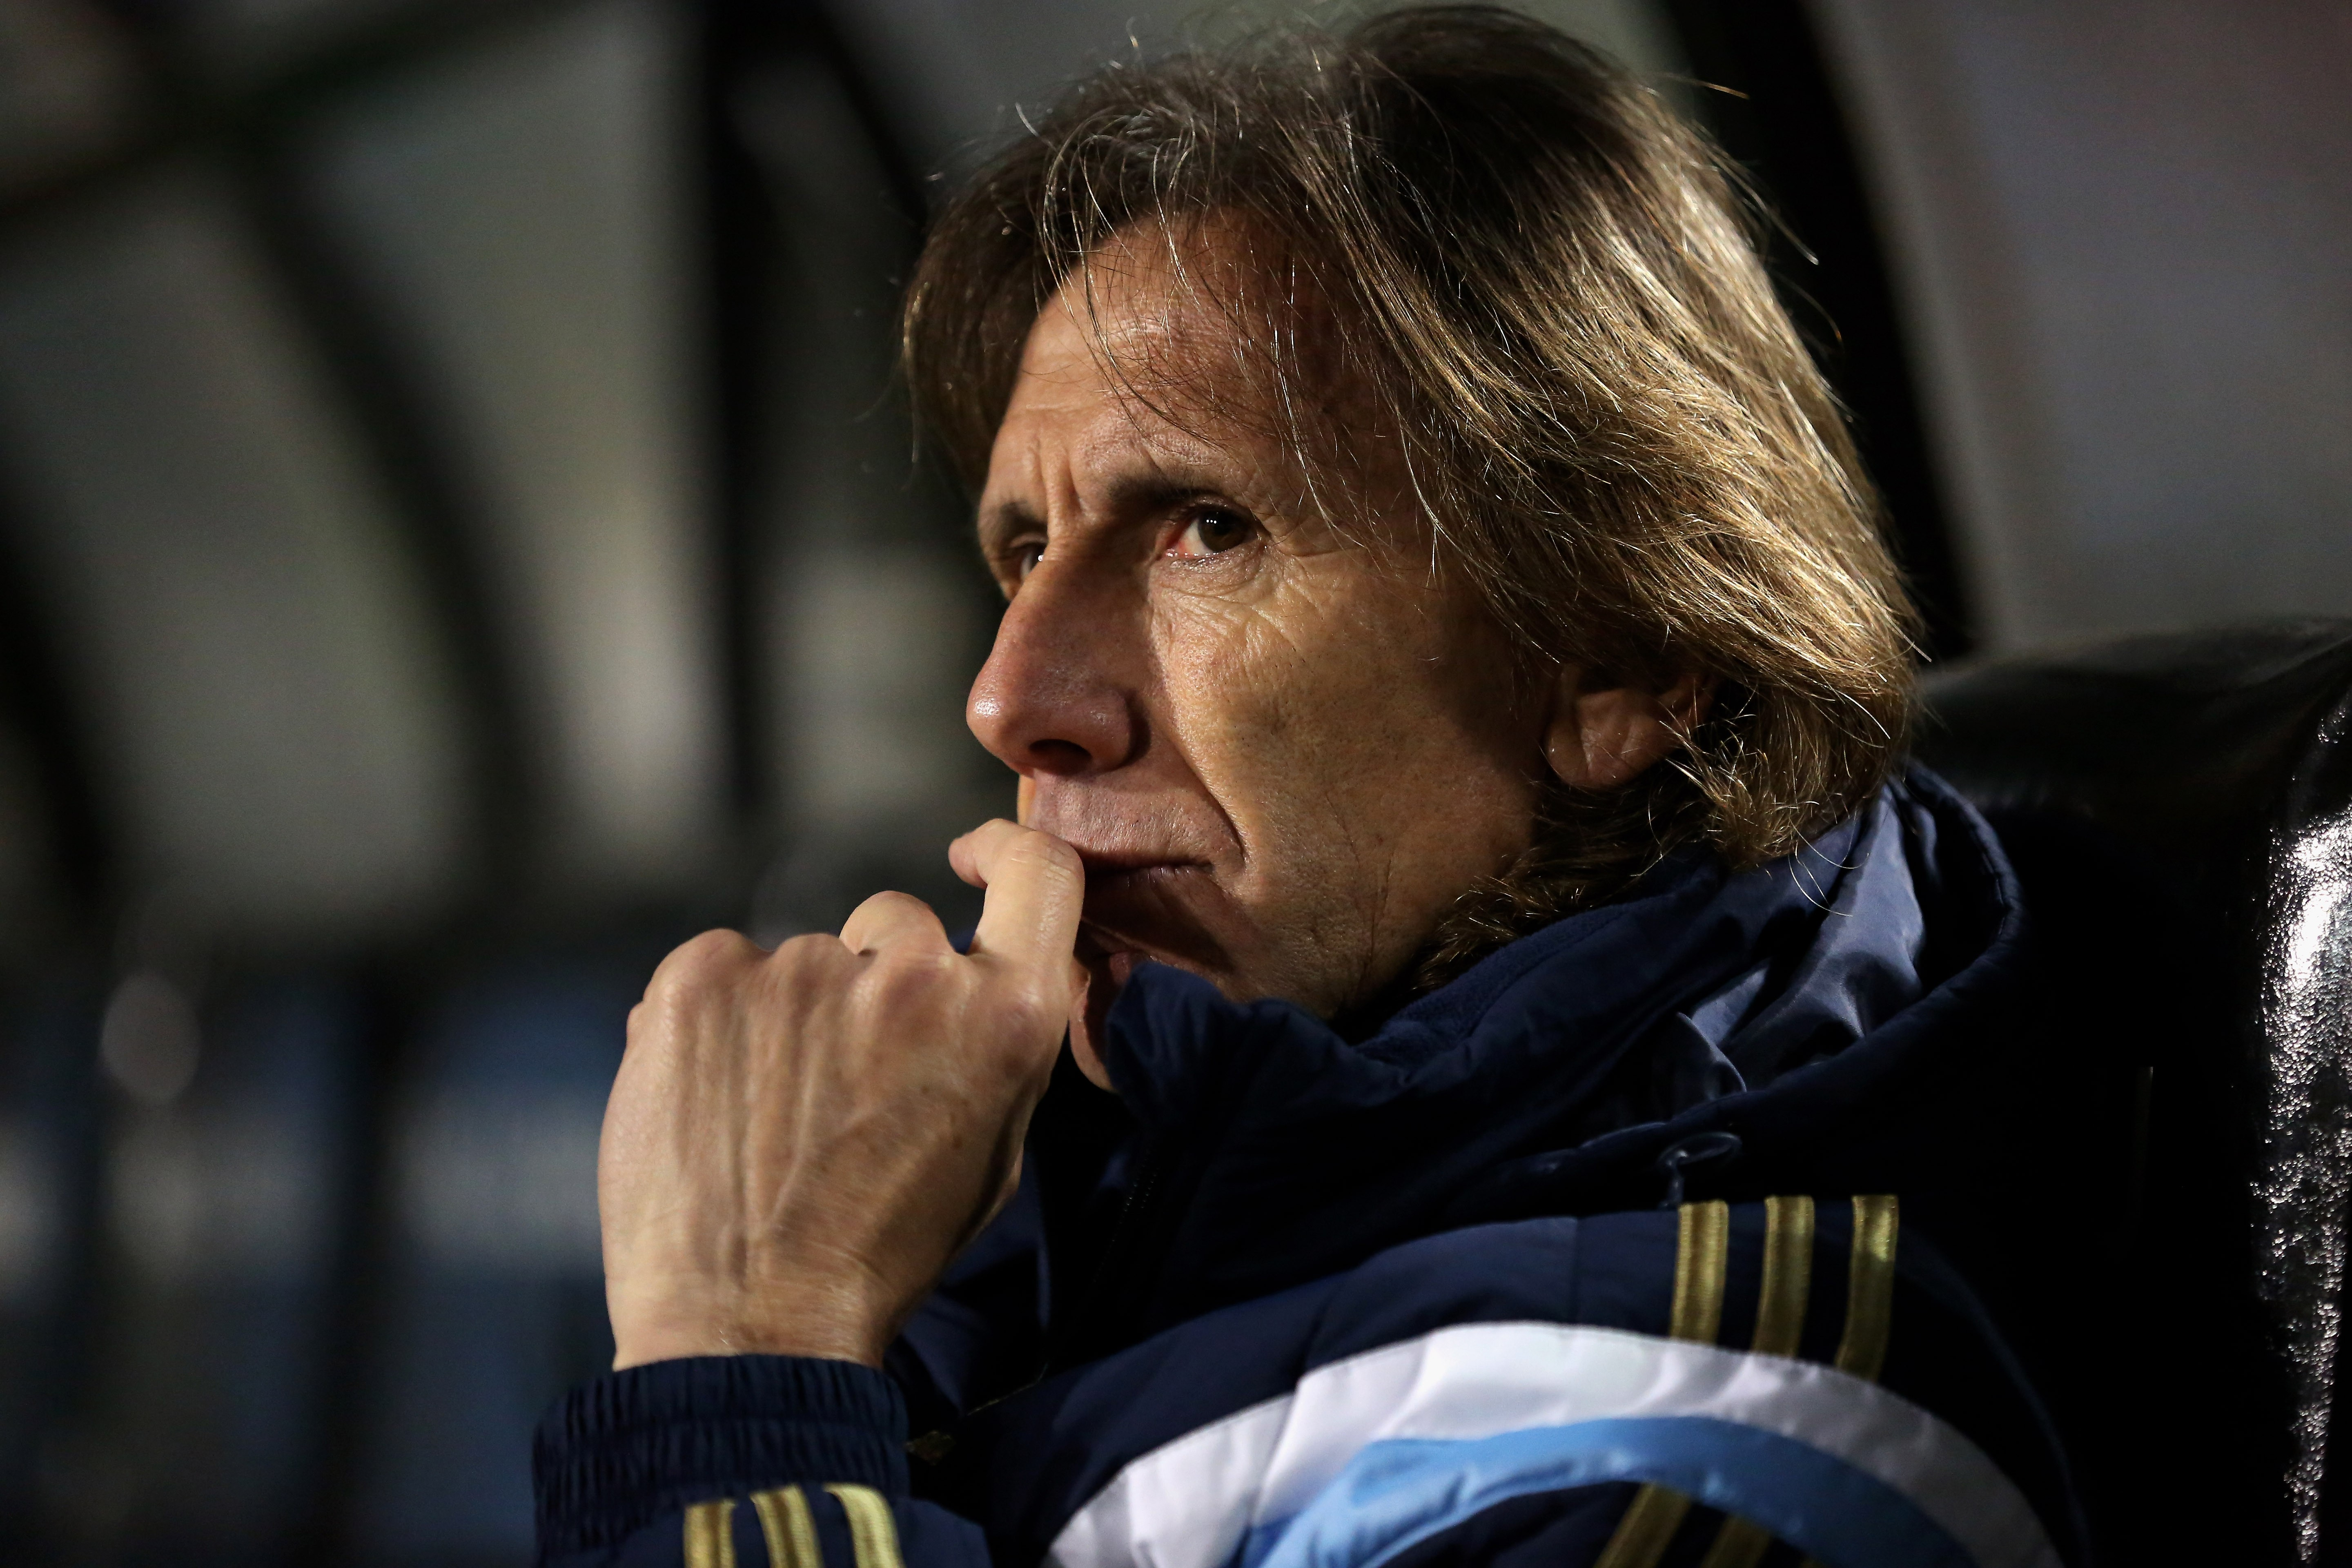 Peru coach Ricardo Gareca will be hoping his experienced players provide the edge to their team at the World Cup. (Photo courtesy: AFP/Getty)